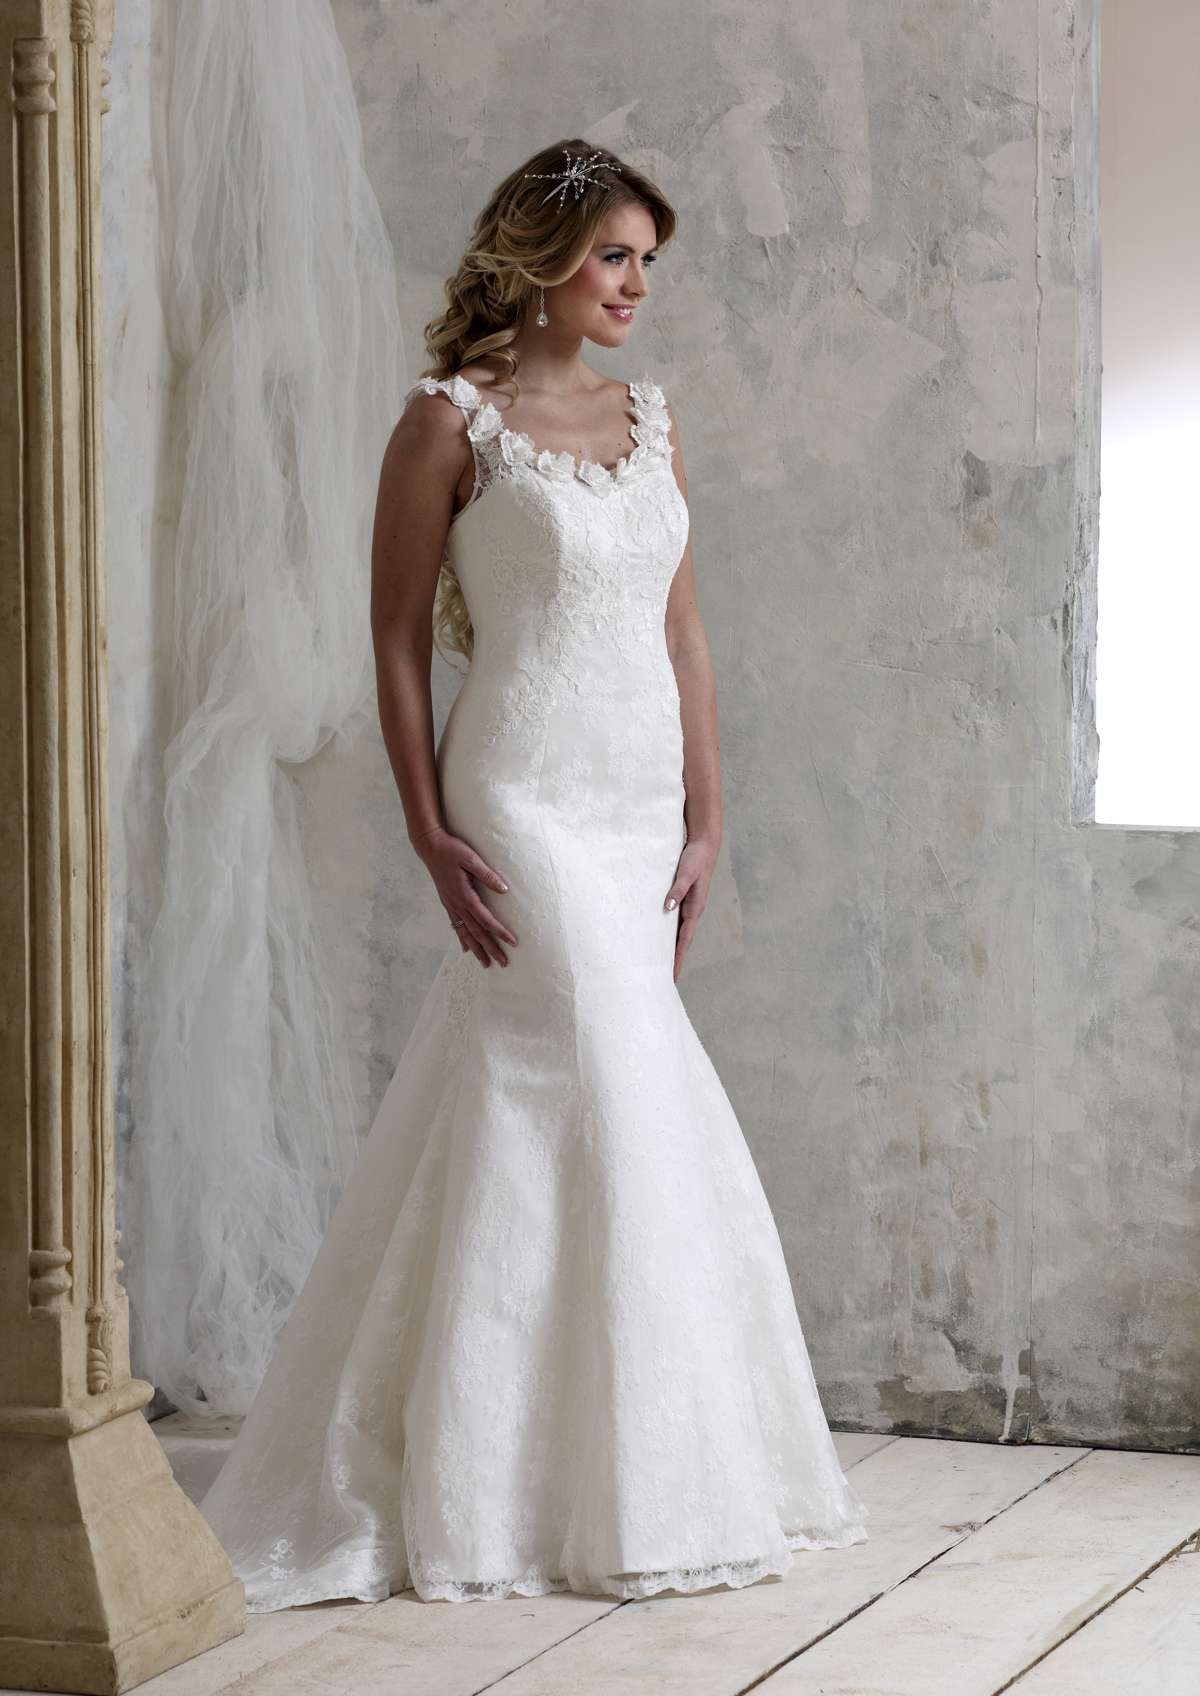 Style D31615 D31616 D31619 D31620 Chic Bridal Gowns From D Zage